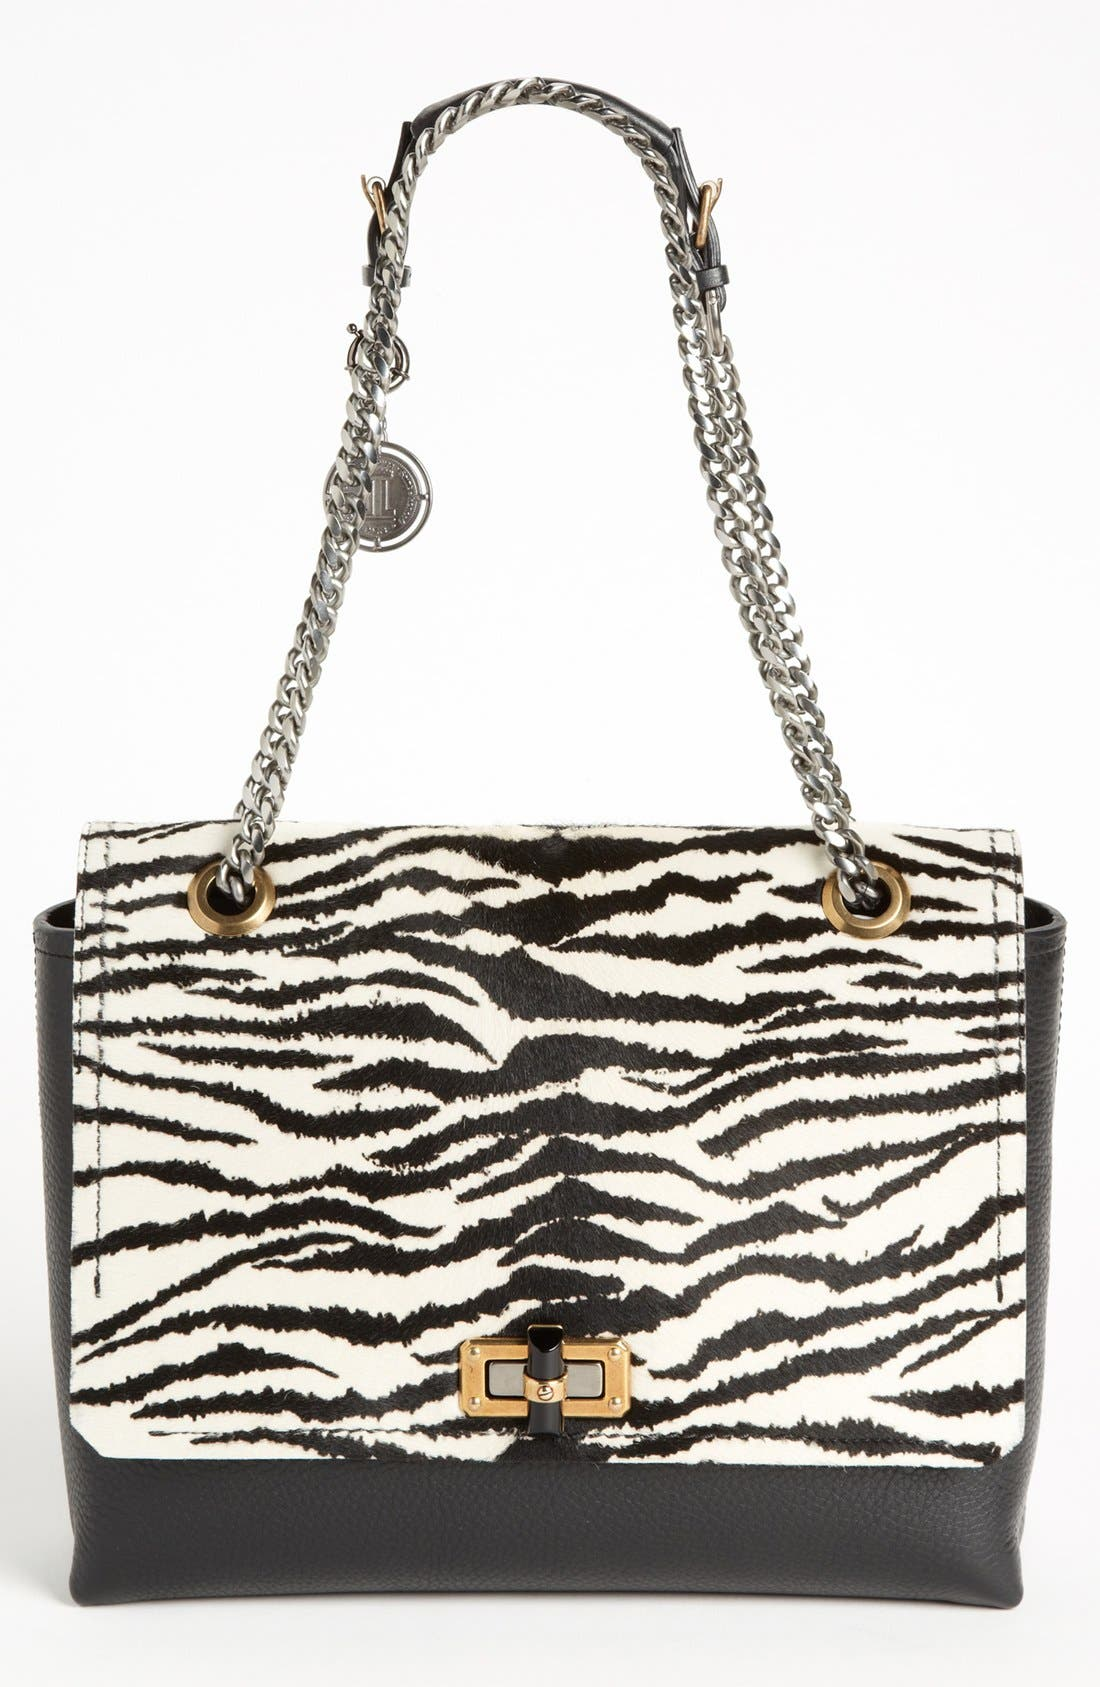 Alternate Image 1 Selected - Lanvin 'Happy Zebra' Calf Hair Flap Shoulder Bag